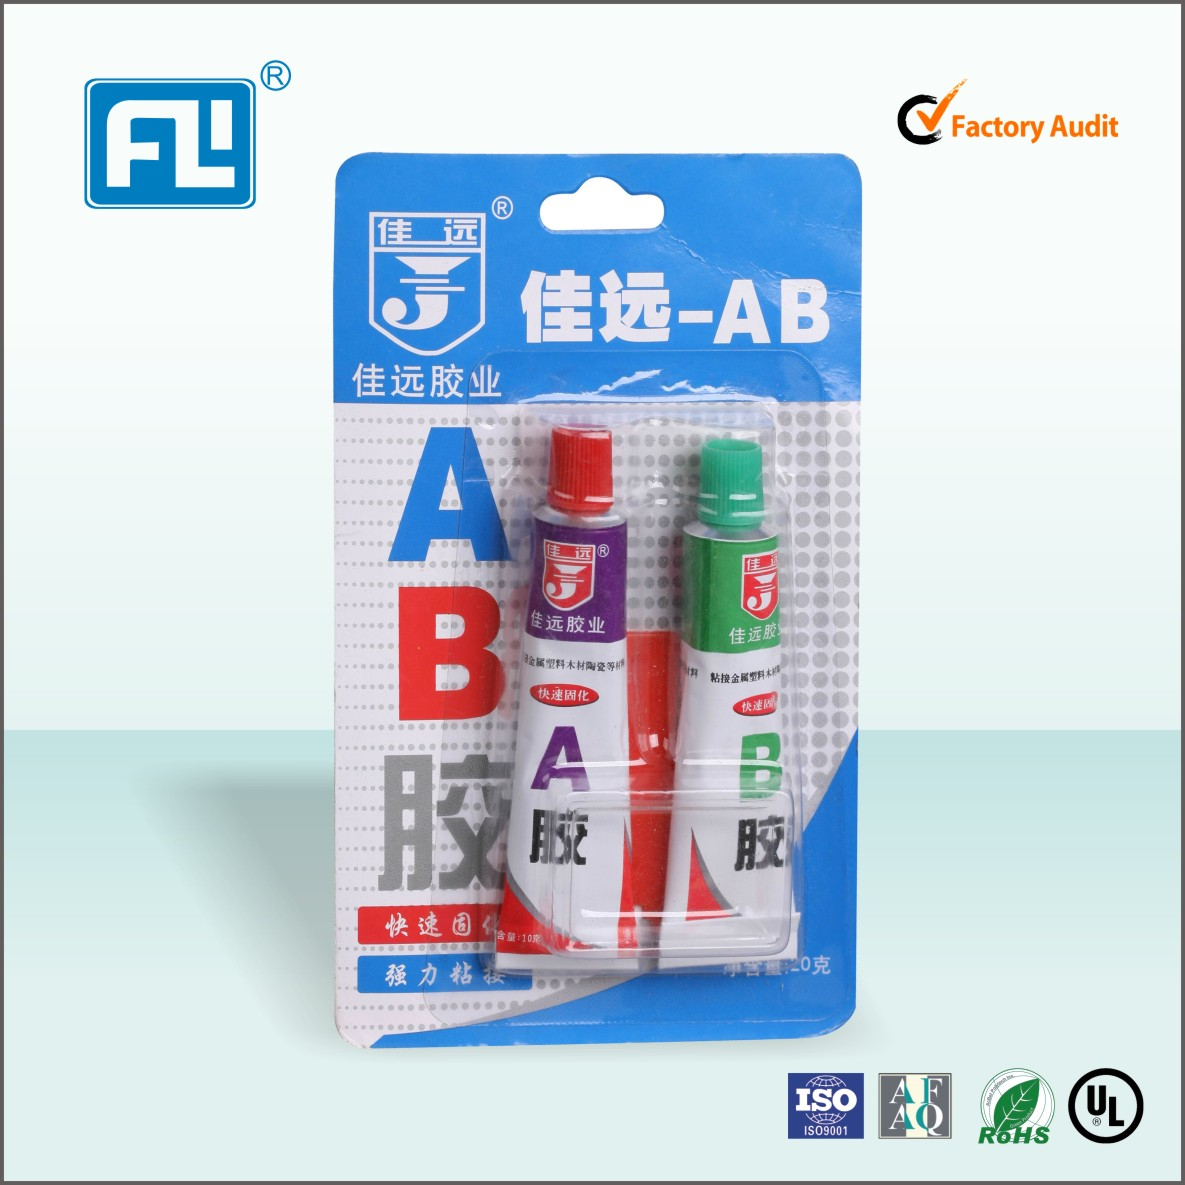 Thermal conductivity epoxy adhesive and syringe AB, stainless steel epoxy adhesive